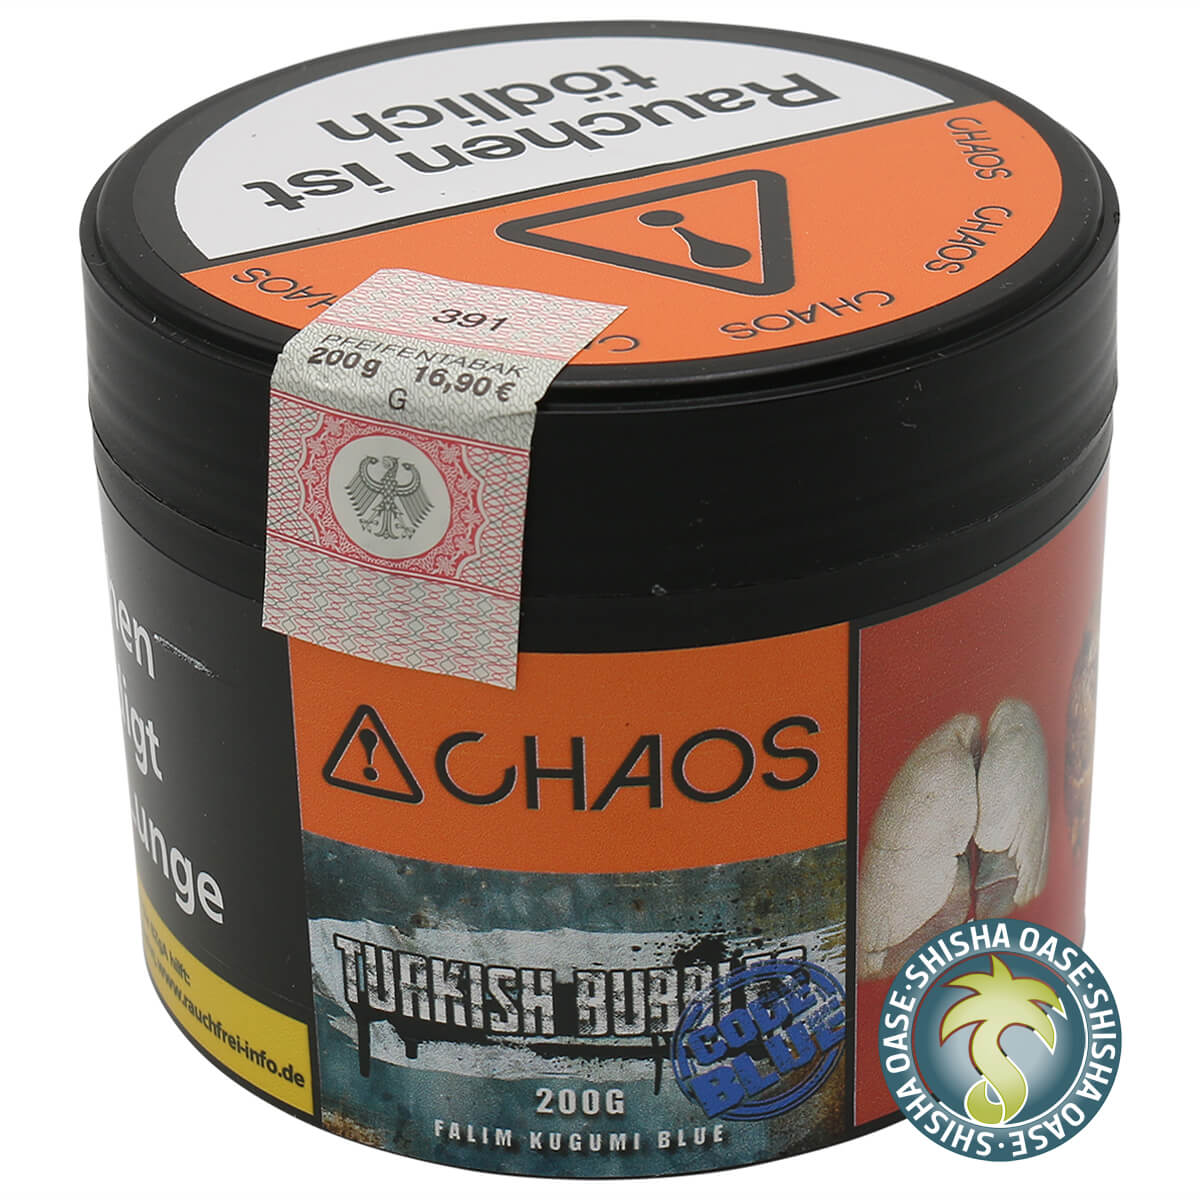 Chaos Tabak Turkish Bubbles Code Blue 200g